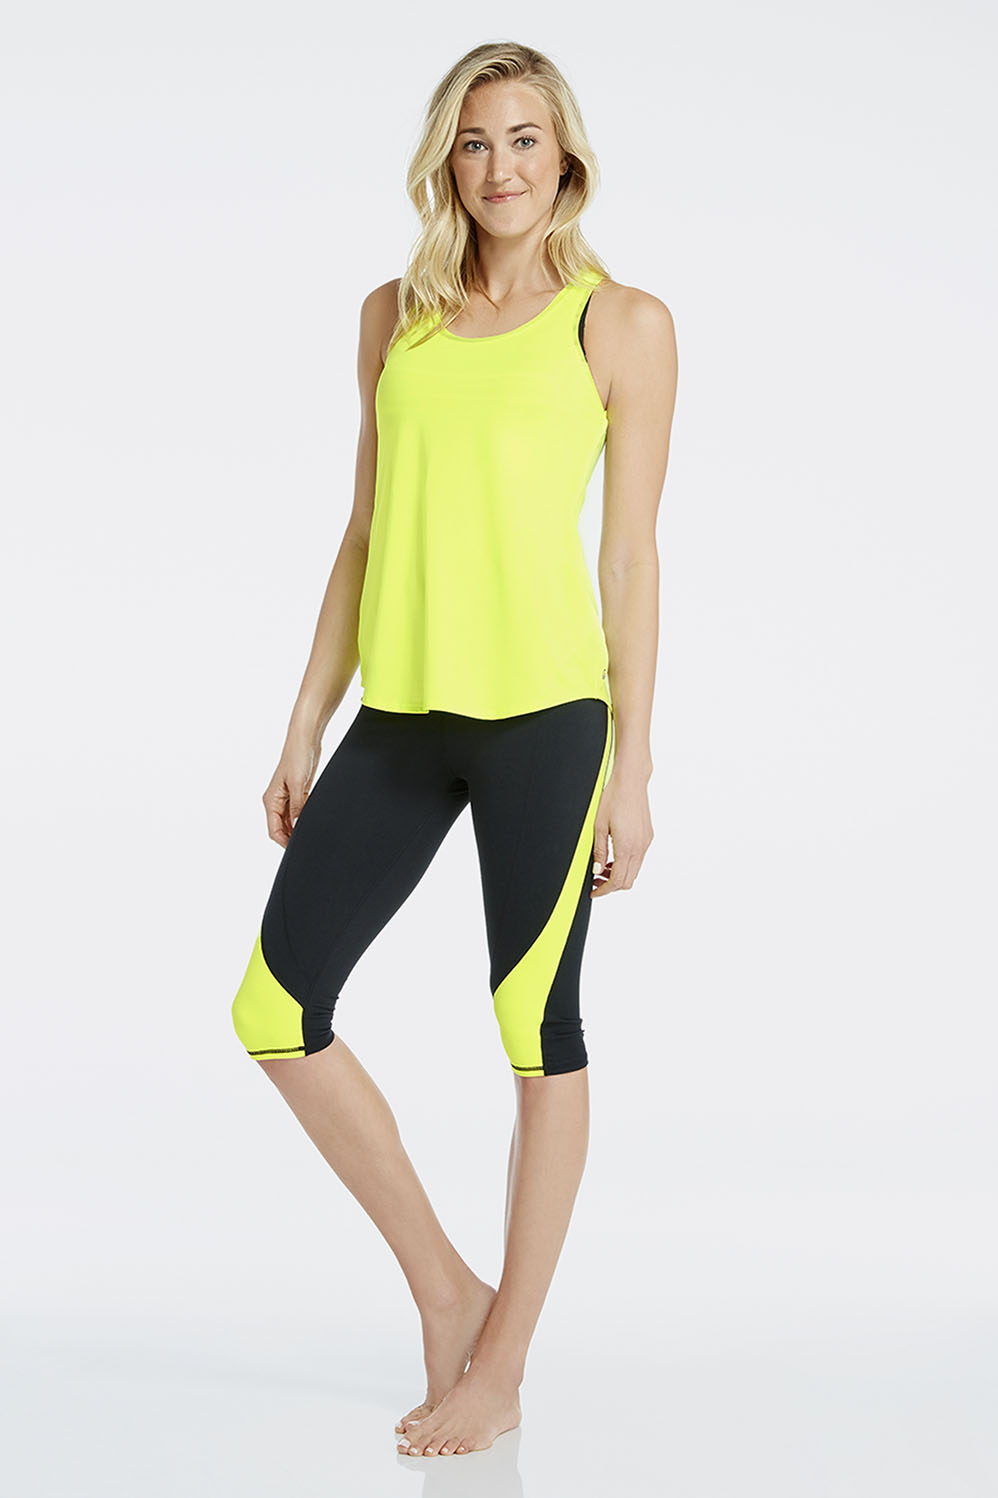 Daffodil Outfit - Get great athletic wear at Fabletics